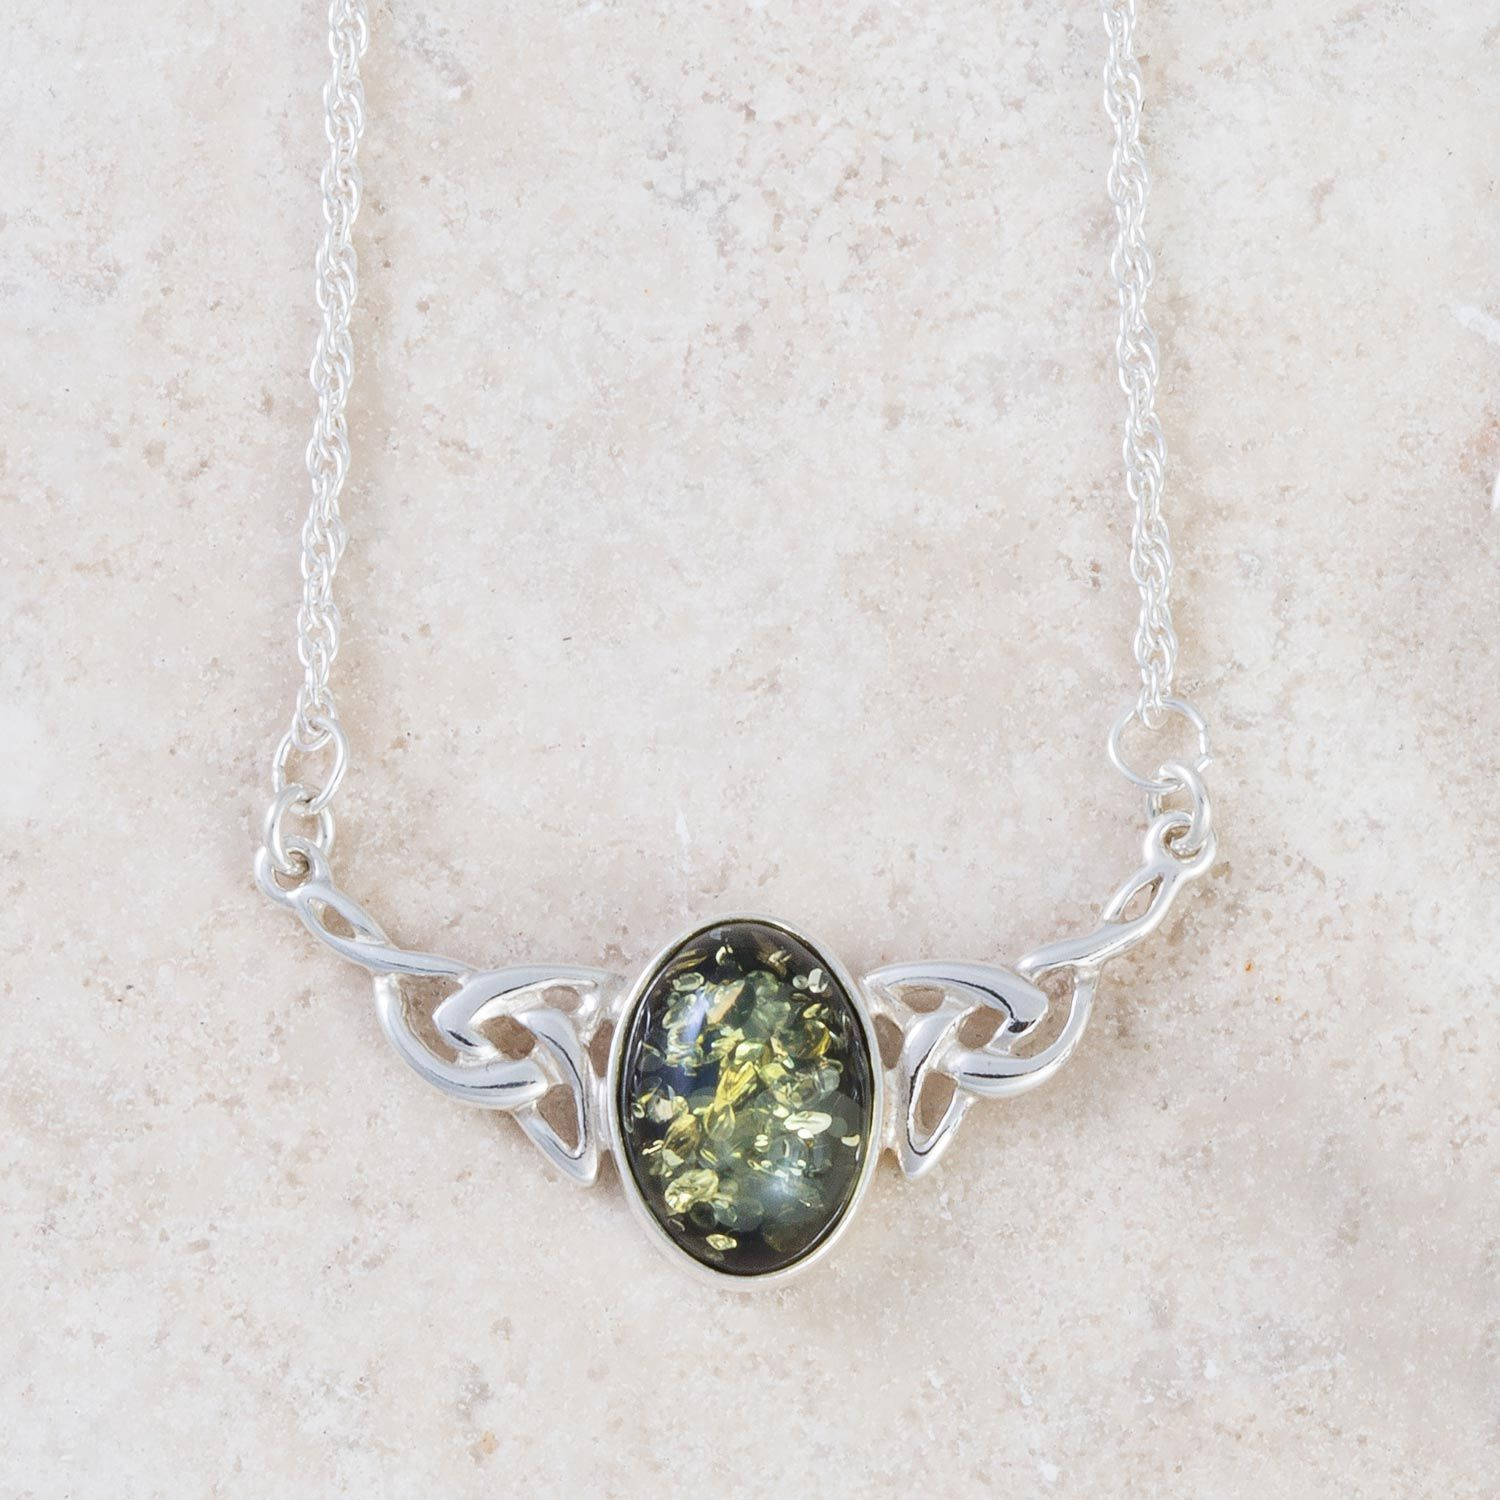 Green Amber Celtic Necklace (With Images)